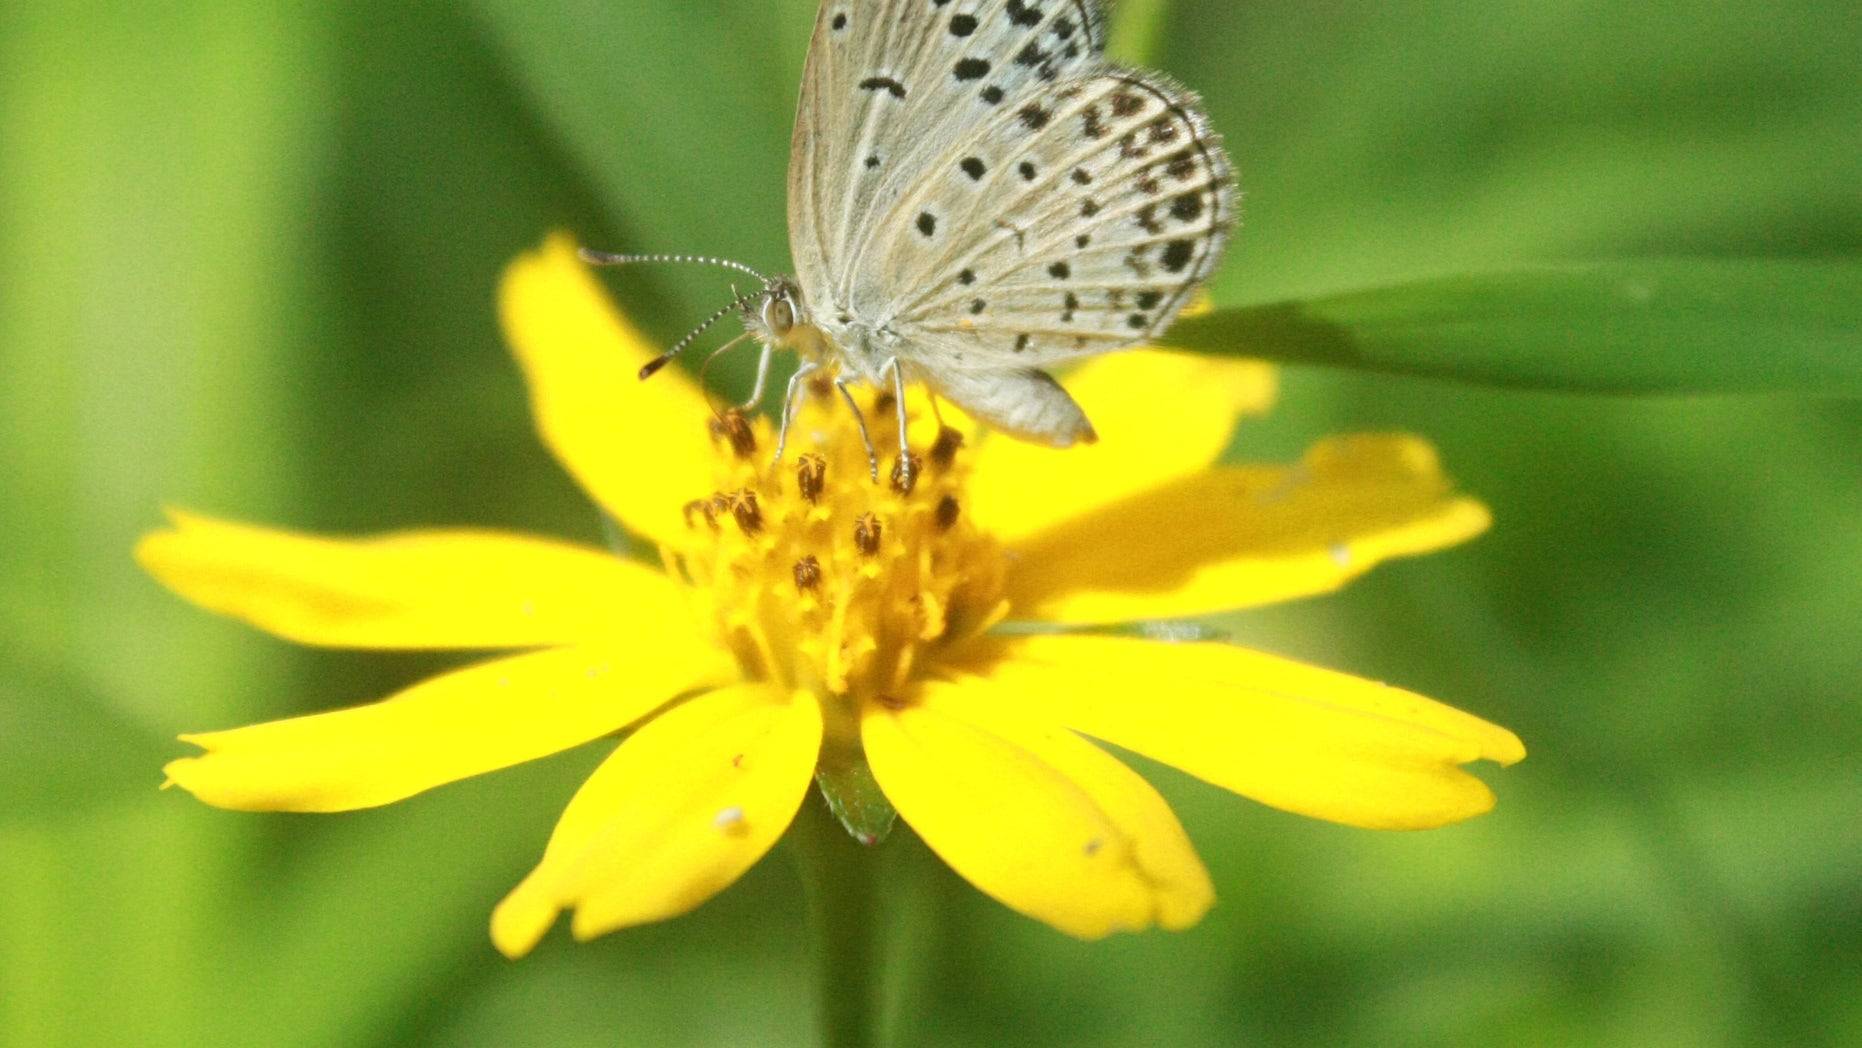 In this undated photo taken by Masaki Iwata of Univesrity of the Ryukyus and released by the university, a normal adult pale grass blue butterfly suckles nectar from a flower. Japanese researchers said they found mutations in butterflies caused by radiation from the crippled Fukushima Dai-Ichi nuclear power plant. A member of the team conducting the research, Joji Otaki of the university, said Wednesday, Aug. 15, 2012, that his group's findings show radiation emitted following catastrophic meltdowns in three of the plants reactors after it was damaged by a 9.0-magnitude earthquake and tsunami on March 11, 2011 is affecting the environment. (AP Photo/Masaki Iwata of University of the Ryukyus) NO SALES, MANDATORY CREDIT, EDITORIAL USE ONLY